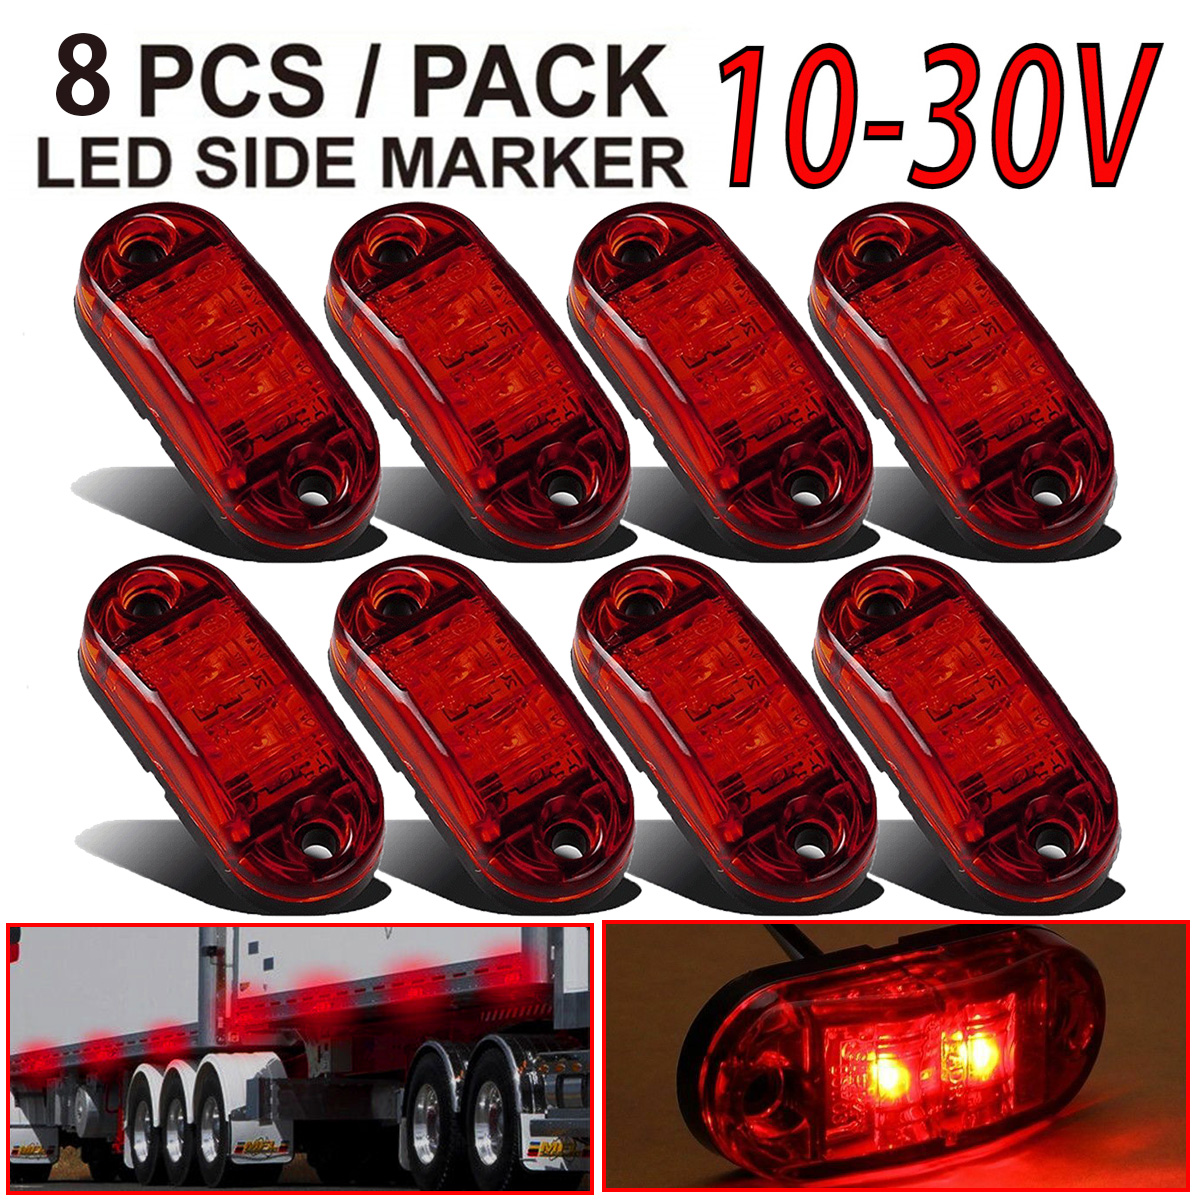 """2x Amber 2x Red Clearance 2.5/"""" 2-LED Oval Side Marker Lamp Light Truck Trailer"""